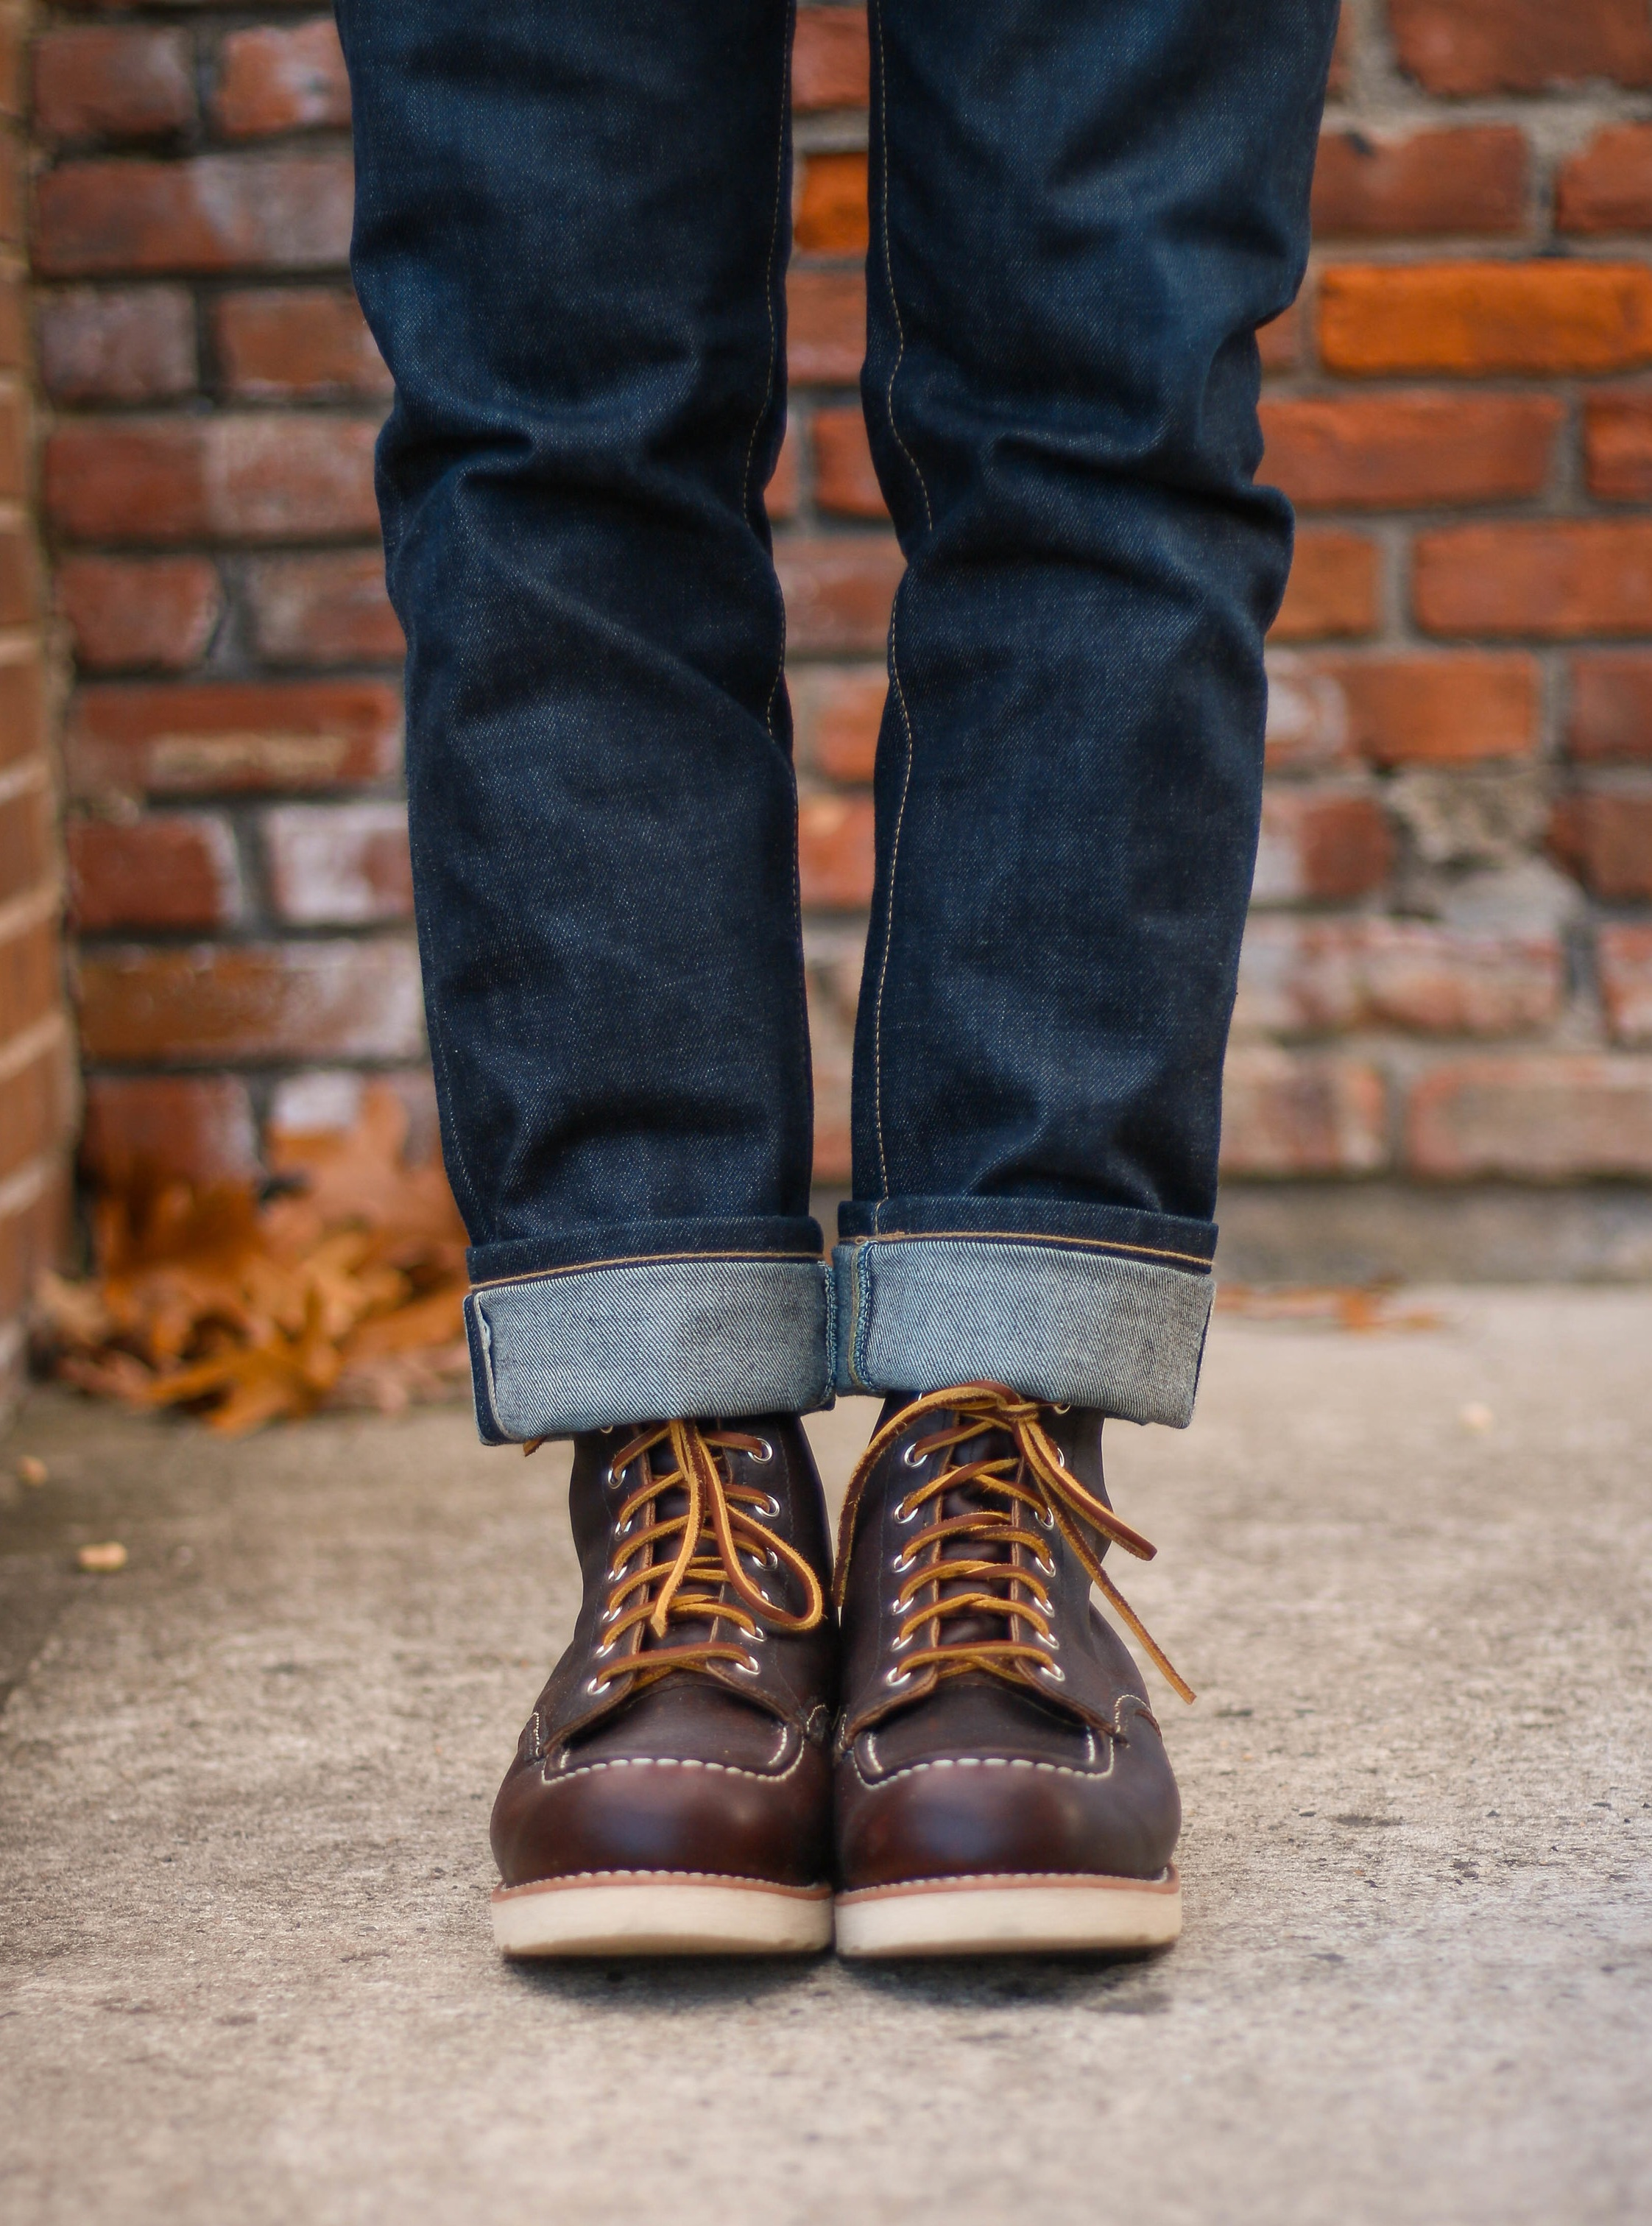 Make sure your boots fit before its too late to exchange them! Ft. Red Wing Moc Toe 8138